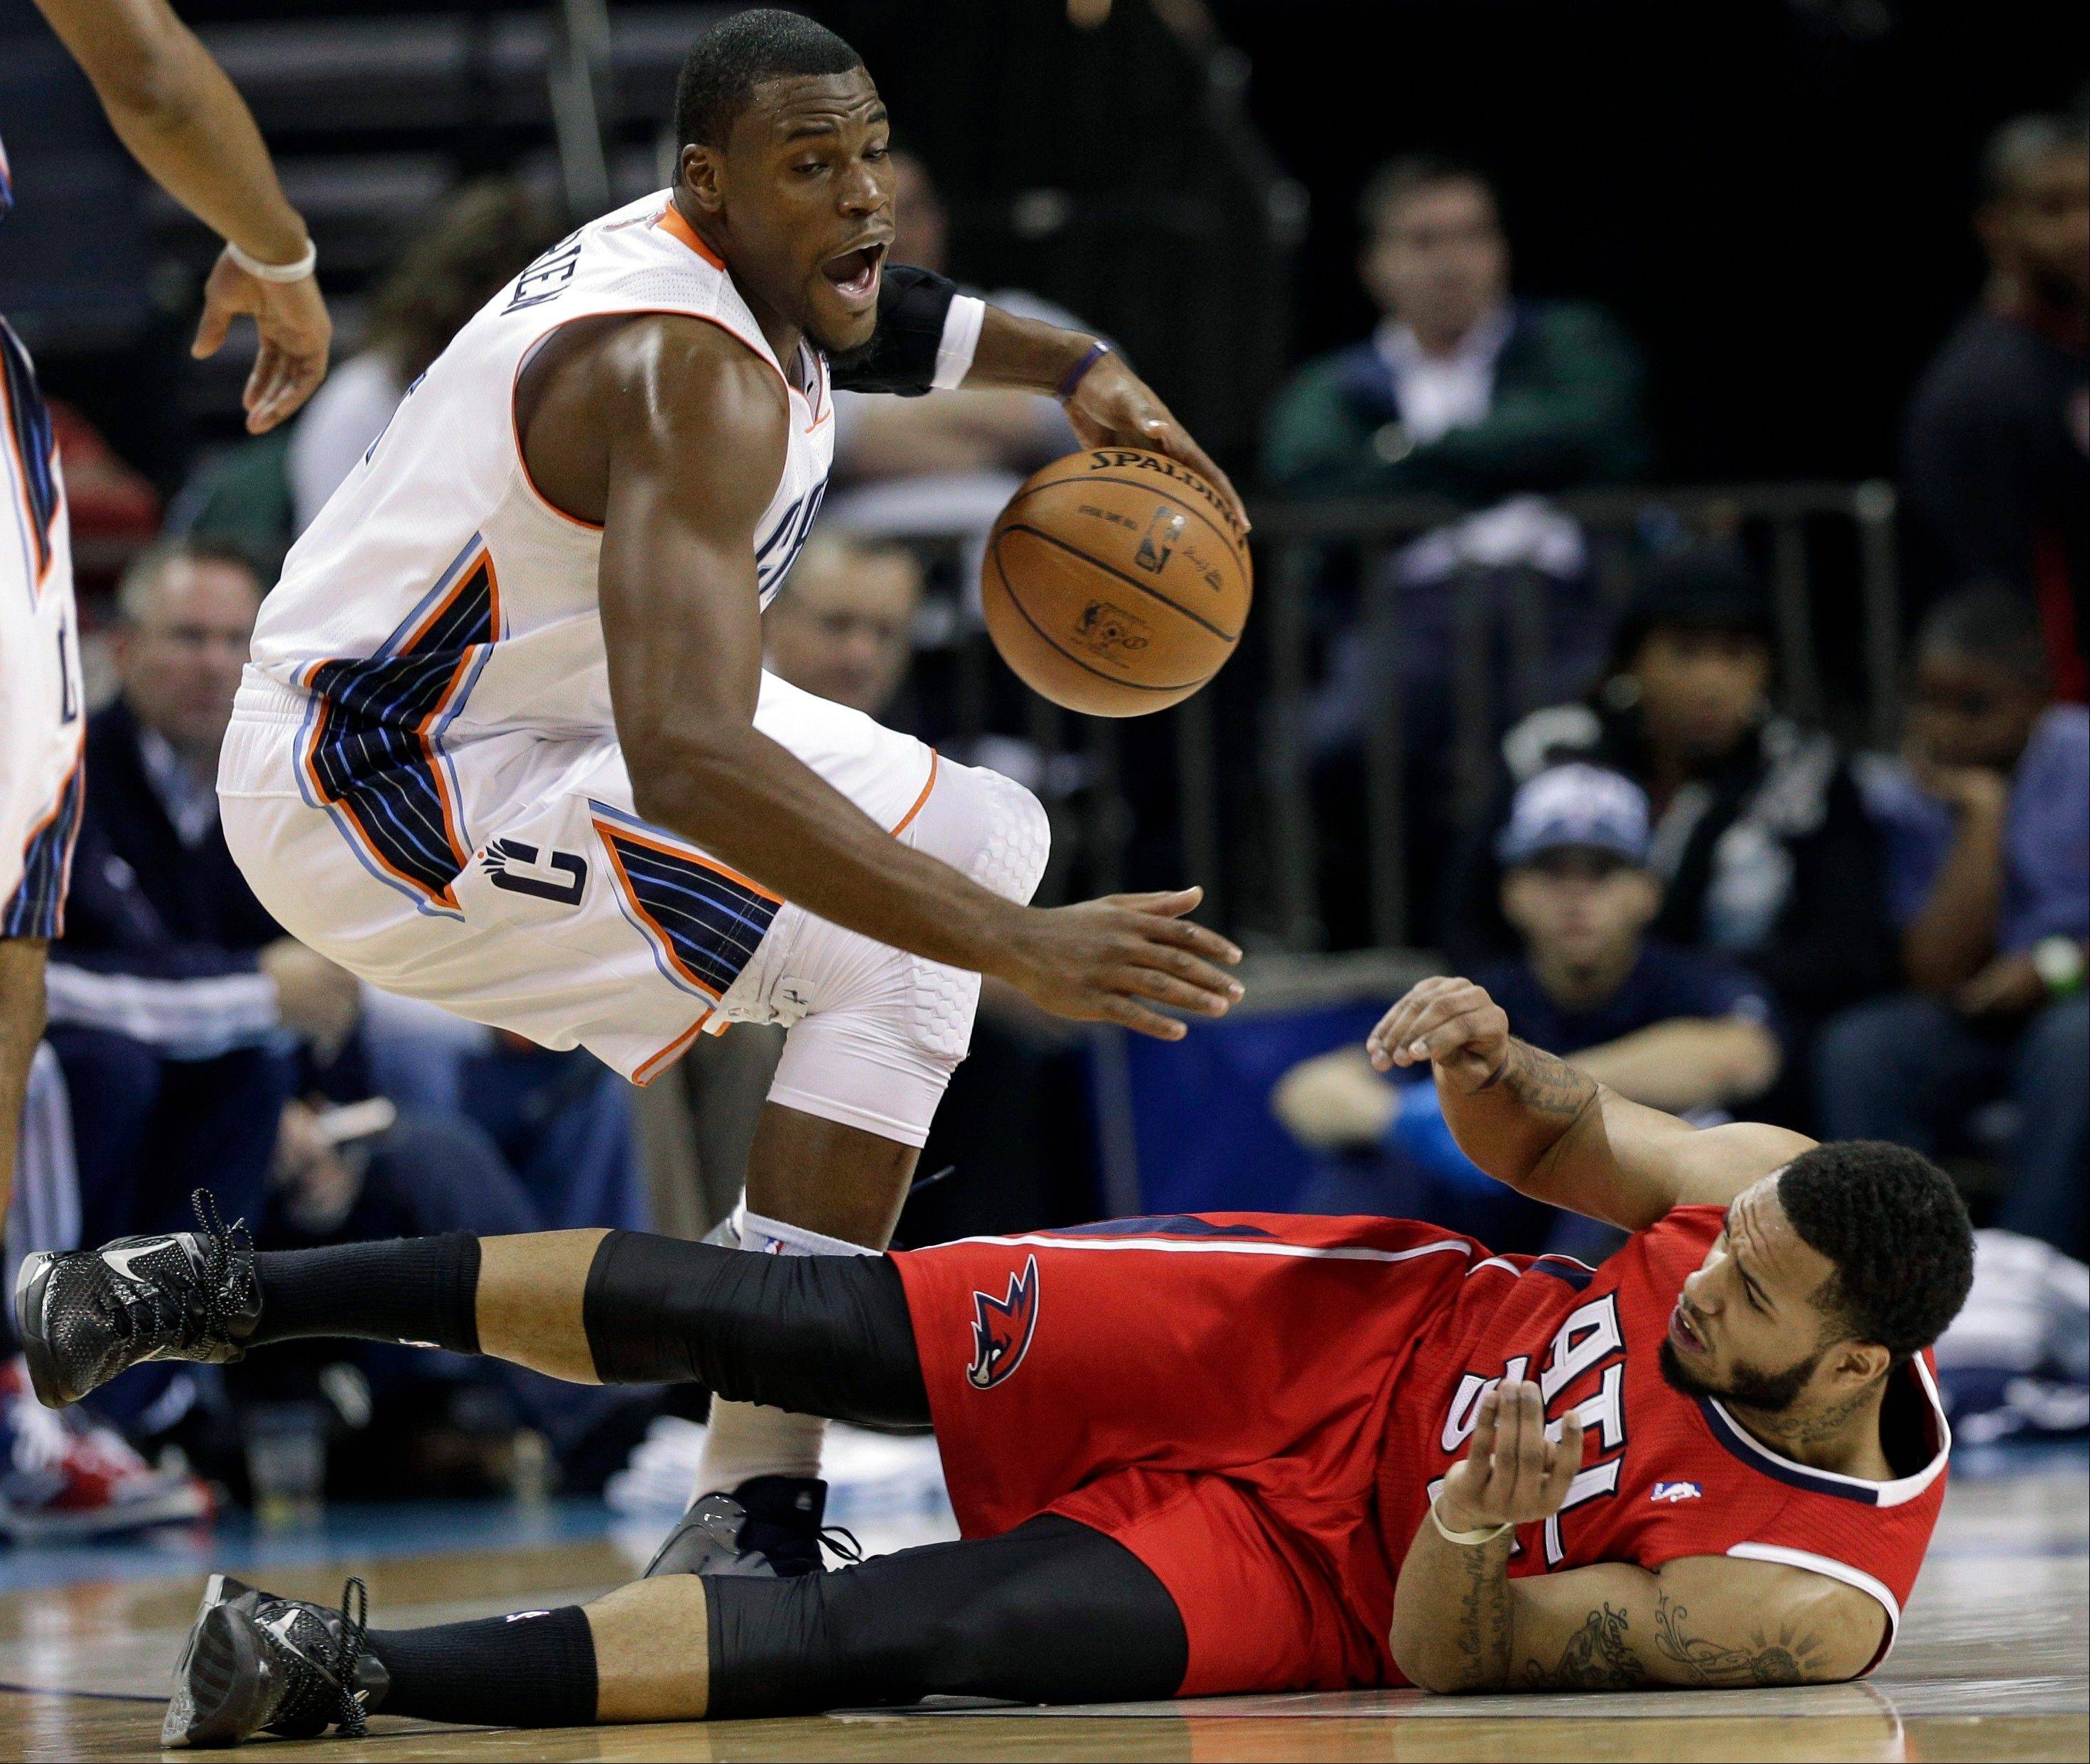 Charlotte Bobcats� Jeff Adrien, top, steals the ball from Atlanta Hawks� Mike Scott, bottom, during the first half of an NBA basketball game Wednesday night in Charlotte, N.C.